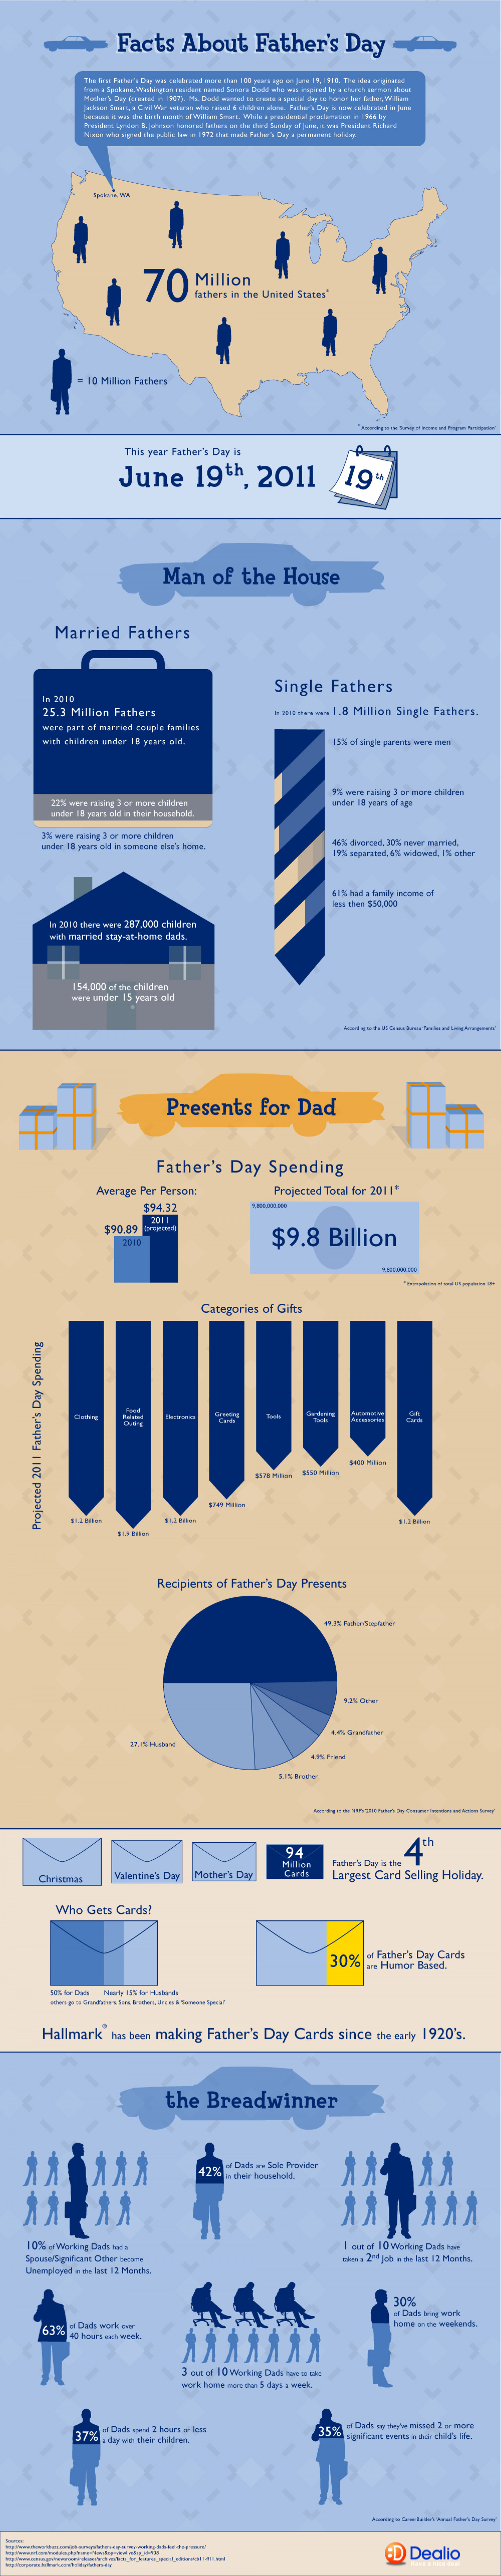 Facts About Father's Day Infographic